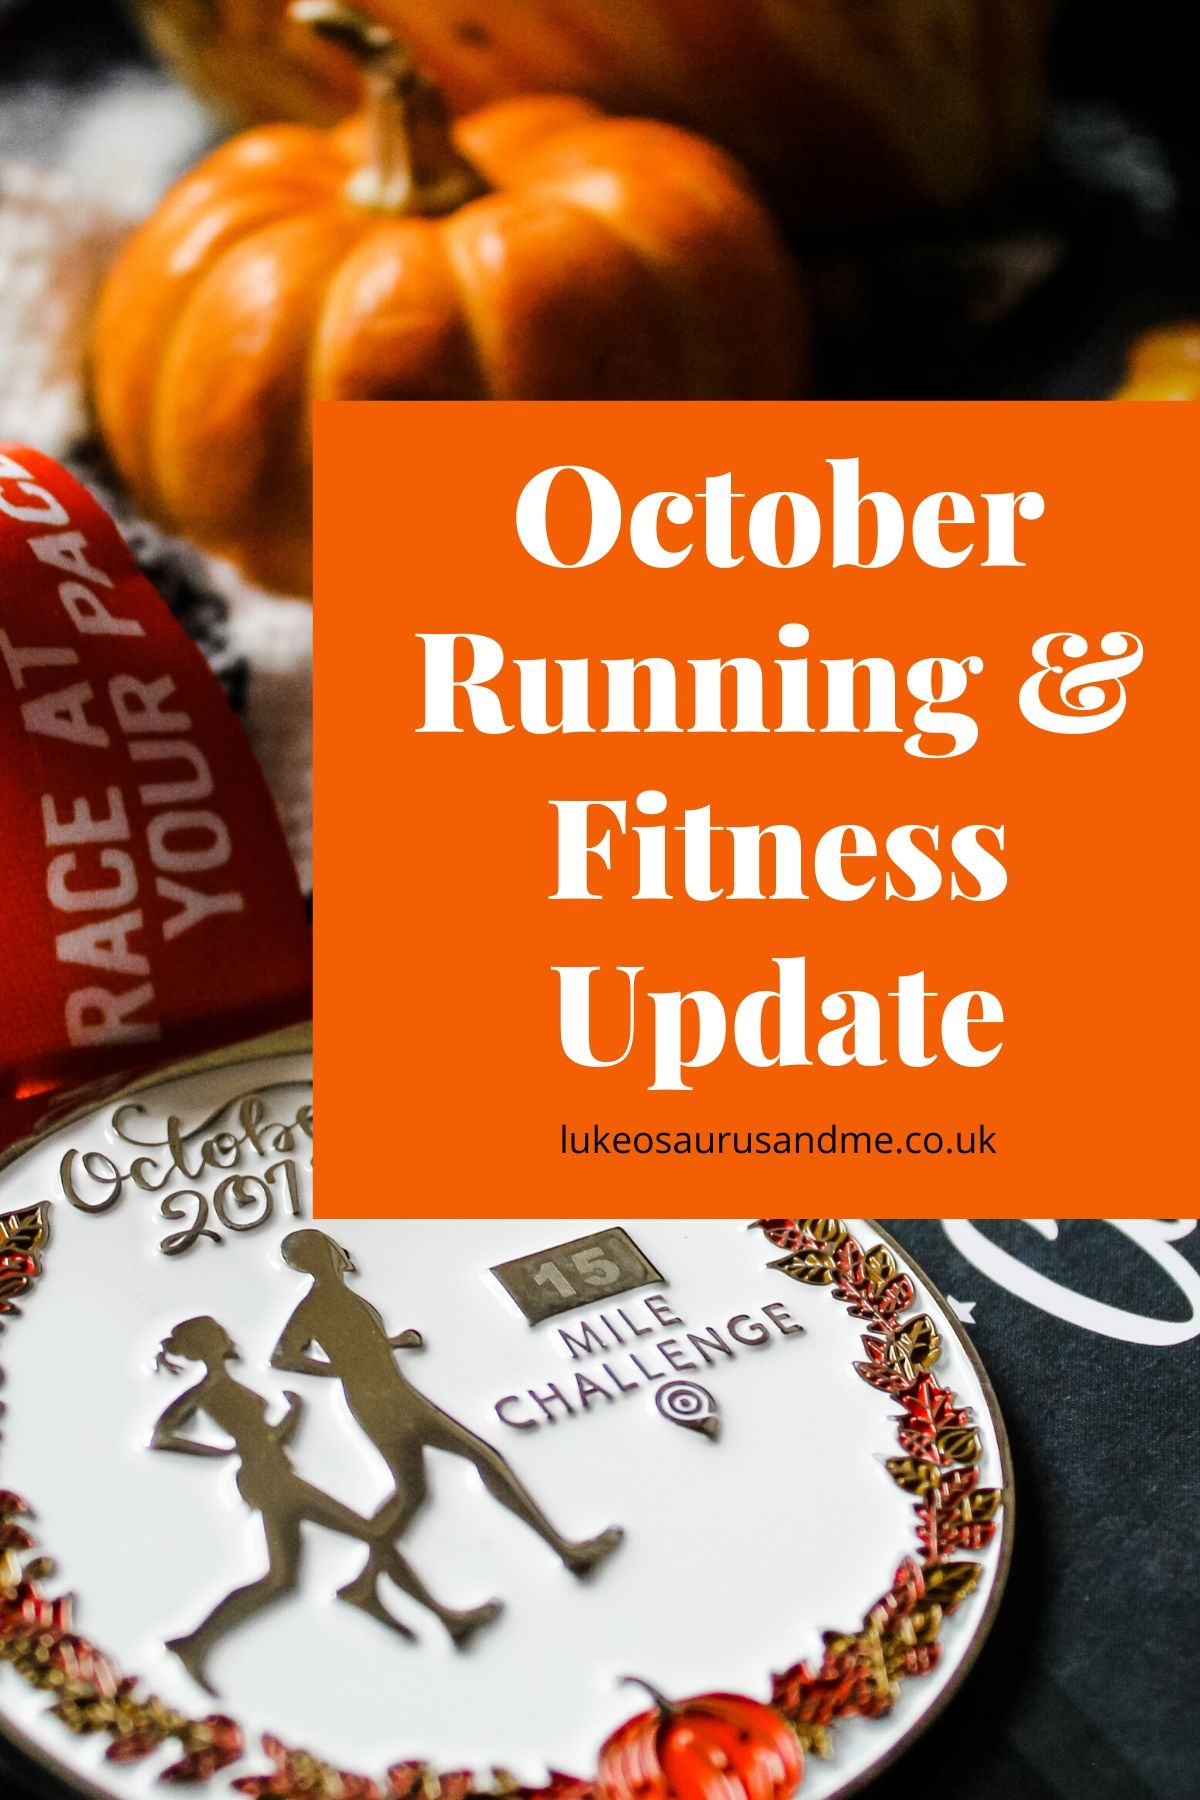 """October 2019's Race At Your Pace completion medal with pumpkins in the back ground and an orange text box which says """"October Running and fitness update""""."""